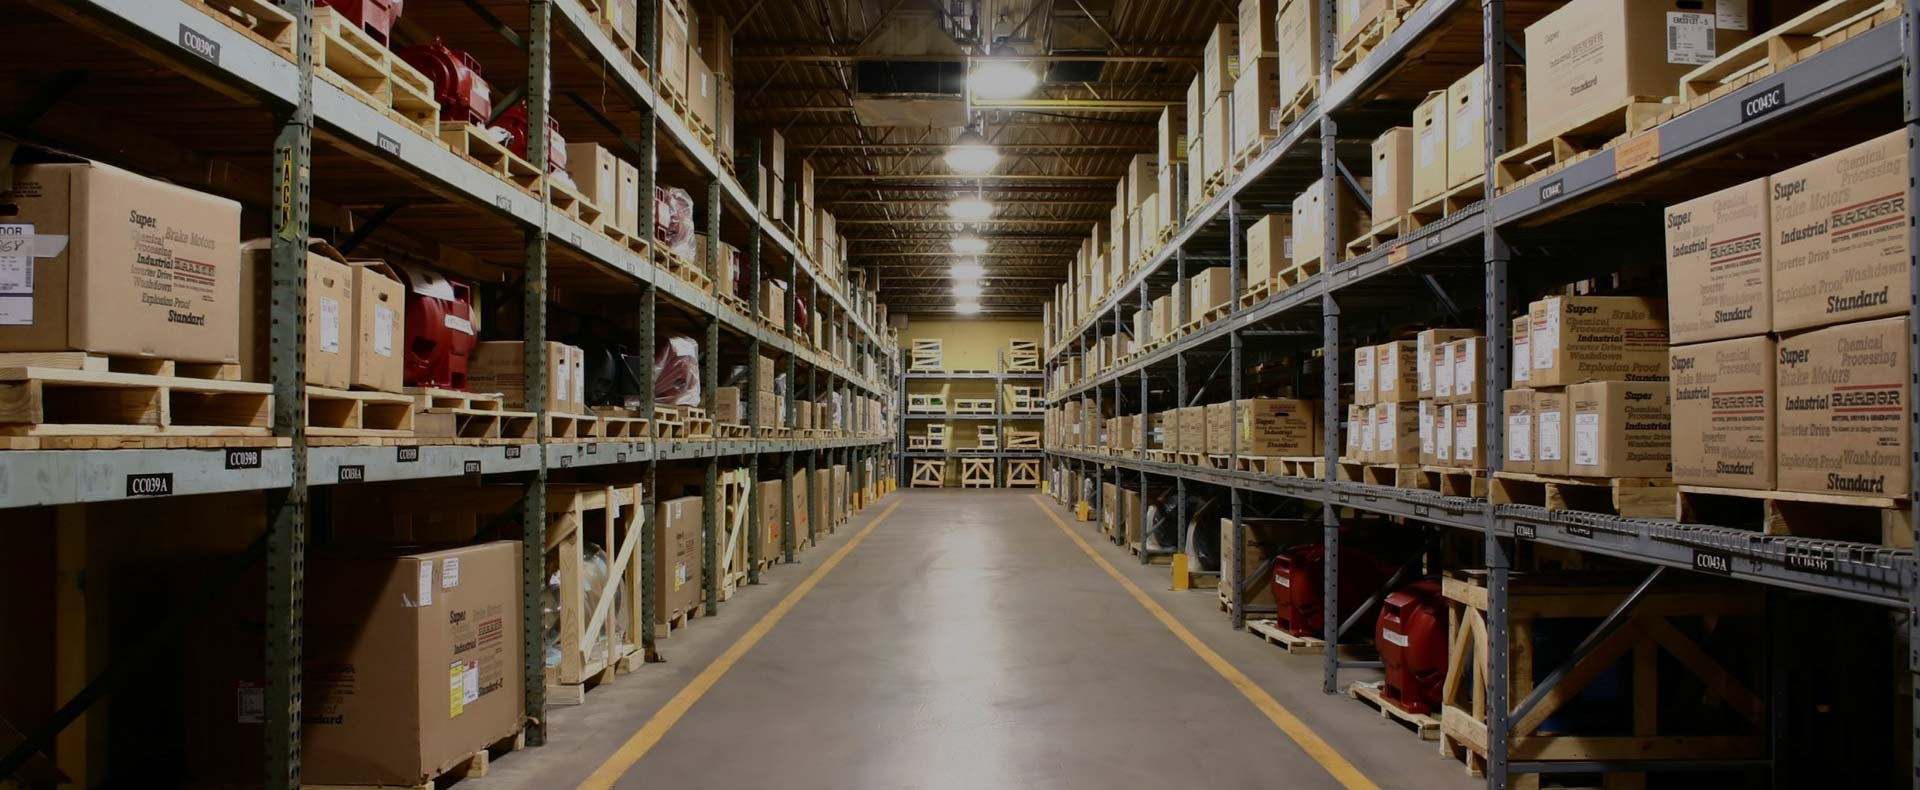 Warehouse space to rent or hire & pallet storage rates